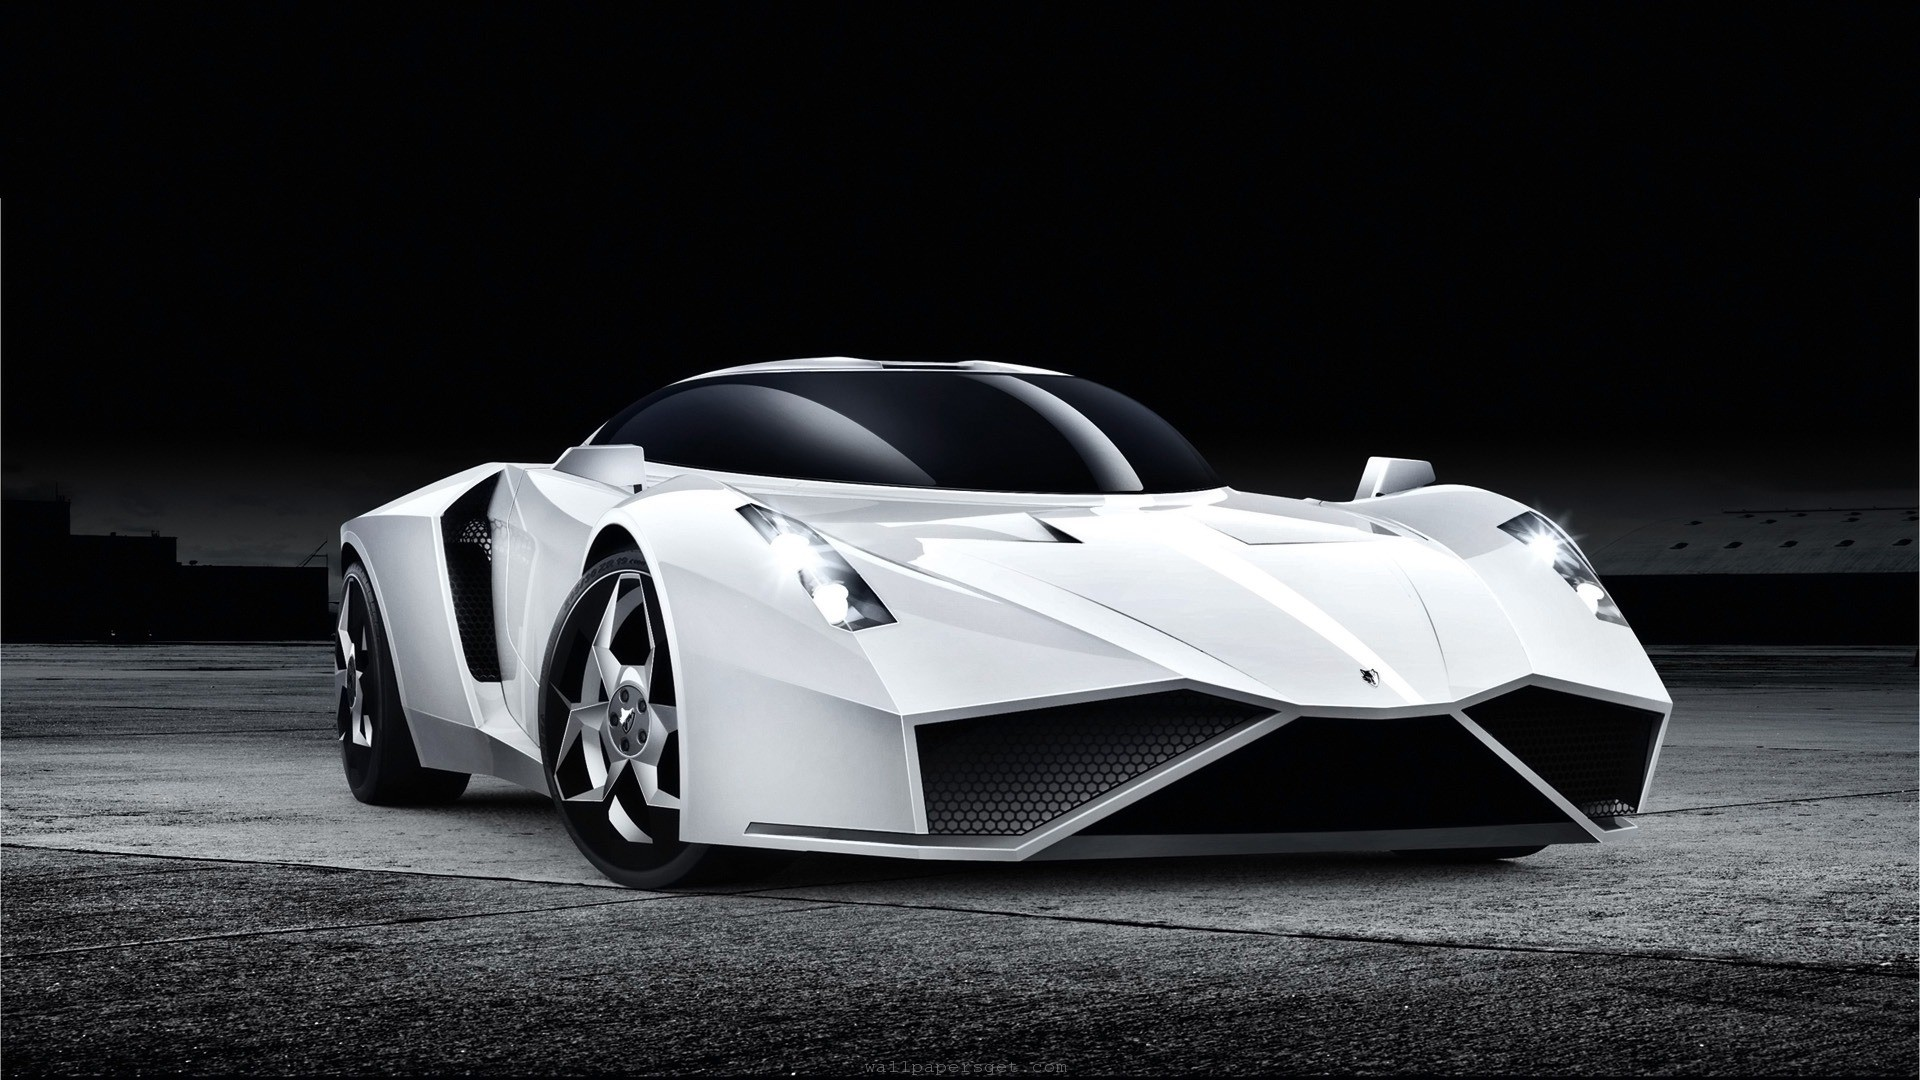 Super Car Wallpaper Android Apps On Google Play Super Cars Hd 1600x900 Download Hd Wallpaper Wallpapertip